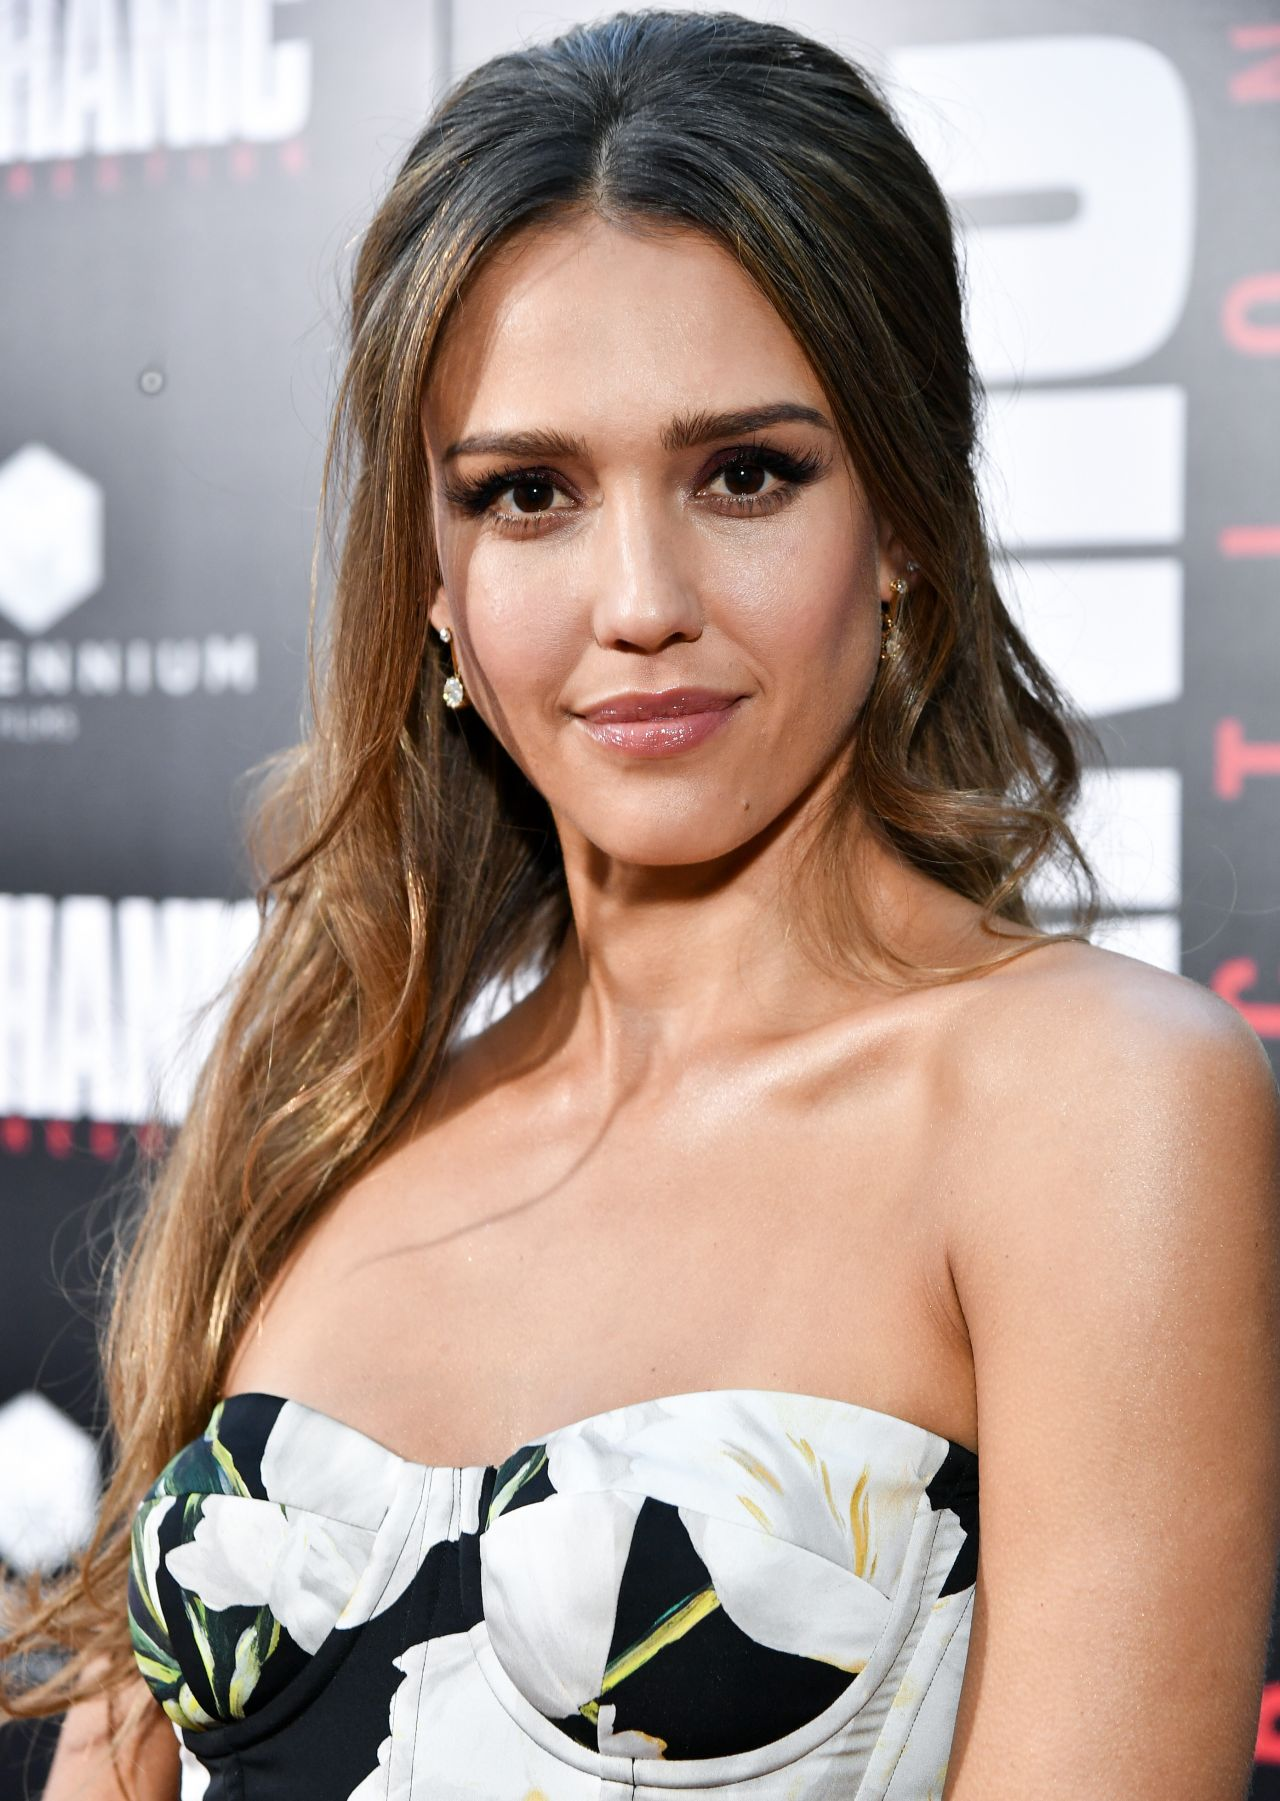 http://celebmafia.com/wp-content/uploads/2016/08/jessica-alba-mechanic-resurrection-premiere-in-los-angeles-08-22-2016-1.jpg